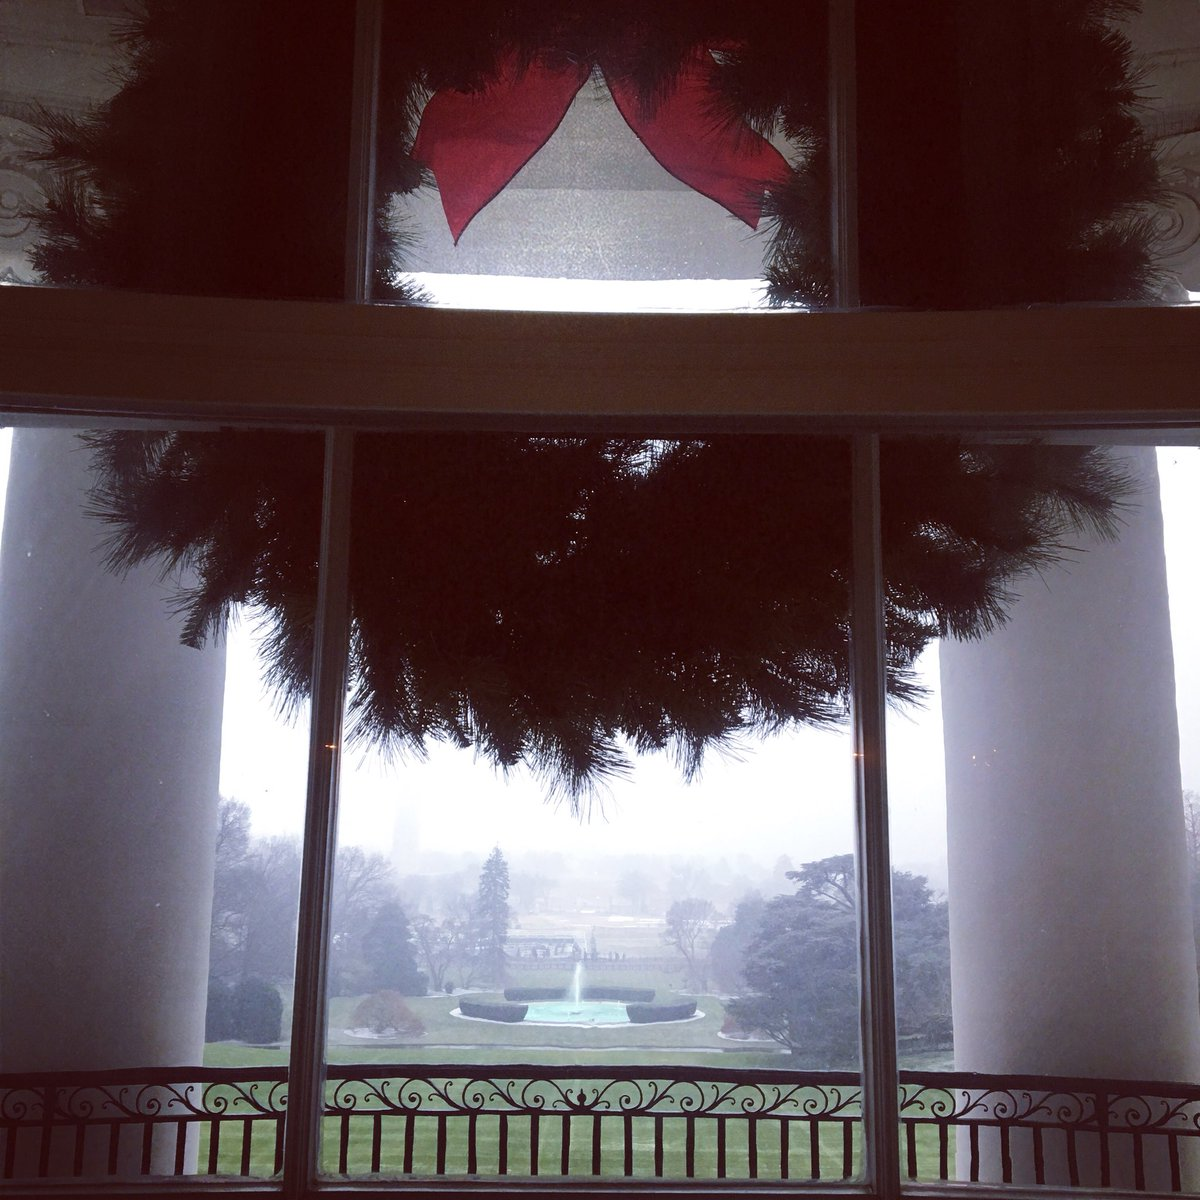 Beautiful morning @WhiteHouse #Christmas. First #snowday2017 https://t.co/m2YGh4e18M